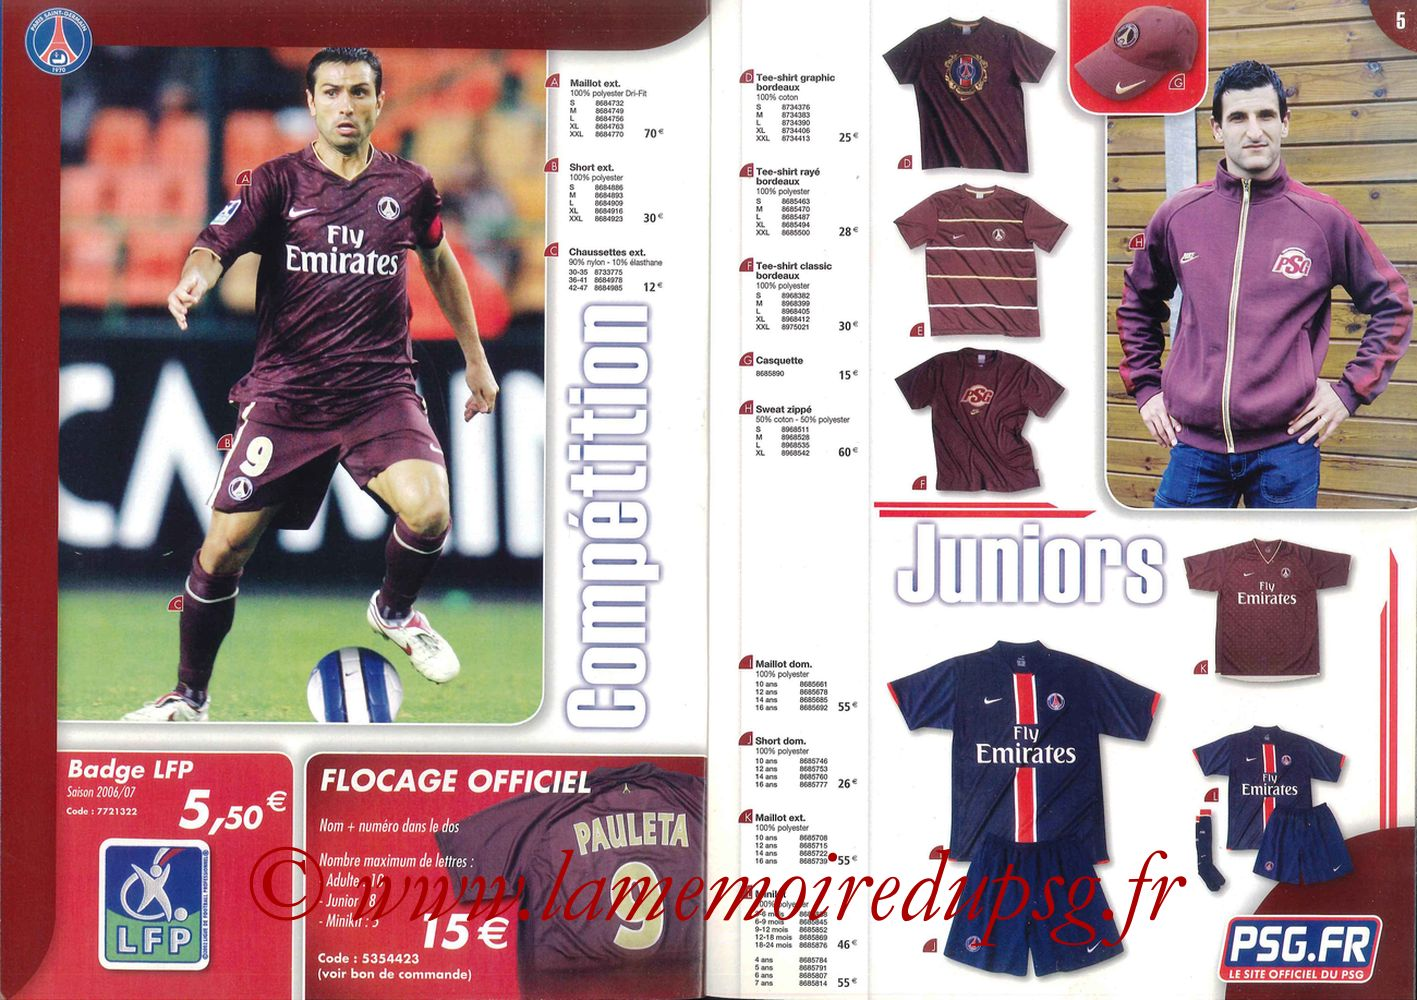 Catalogue PSG - 2006-07 - Pages 04 et 05